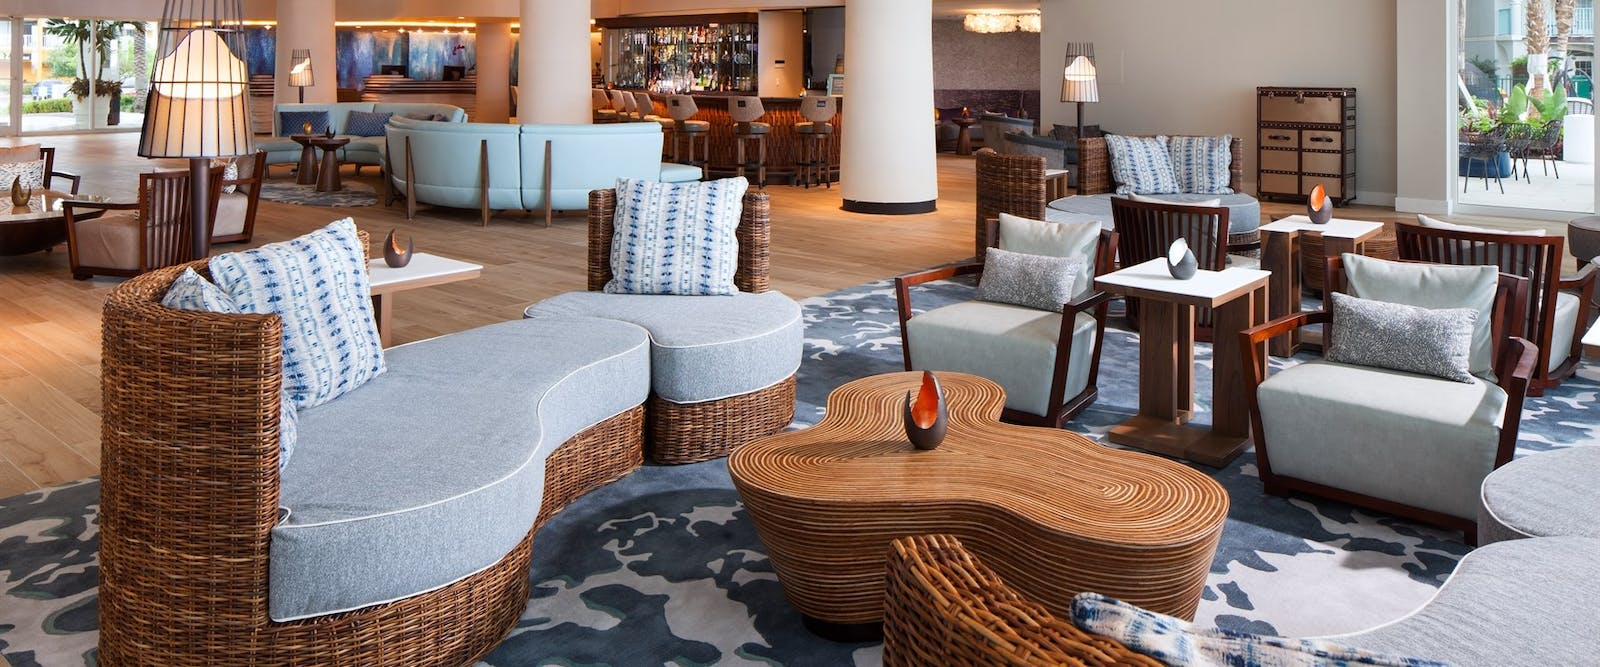 Bar Area at The Westin Grand Cayman Seven Mile Beach Resort & Spa, Cayman Islands